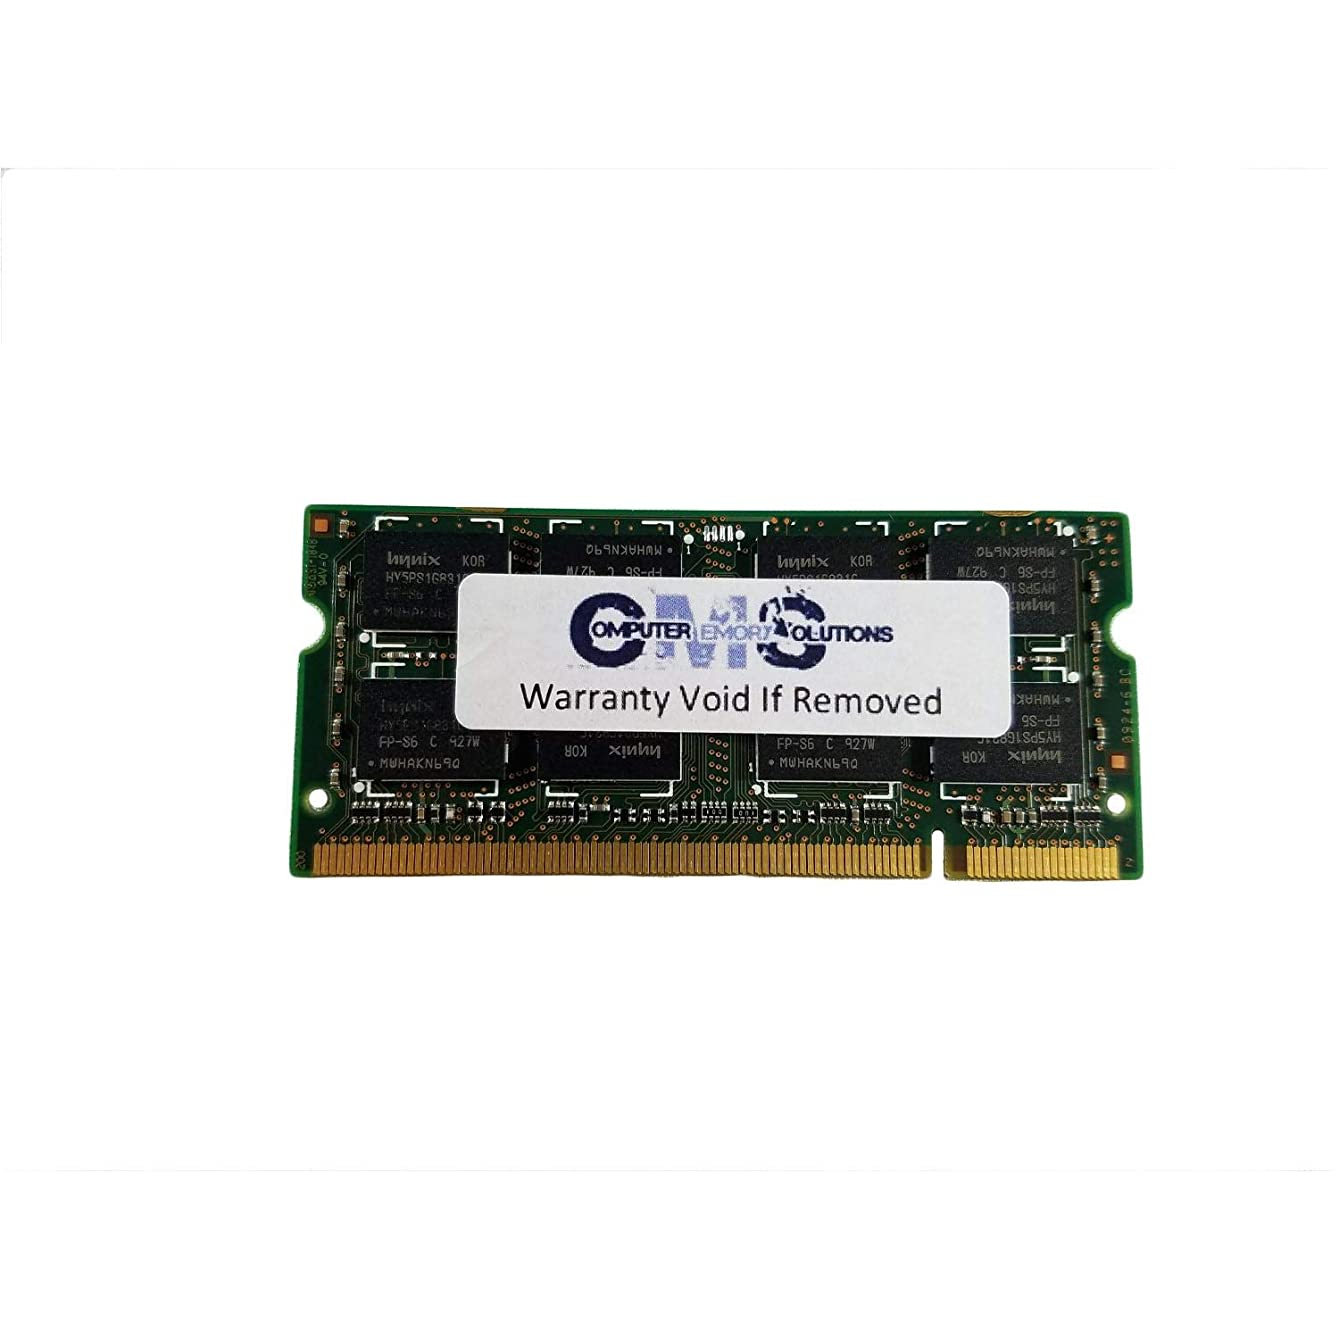 2Gb Memory Ram Compatible with Toshiba Satellite L305 L305D Series Ddr2 By CMS A38 zcalzu899643